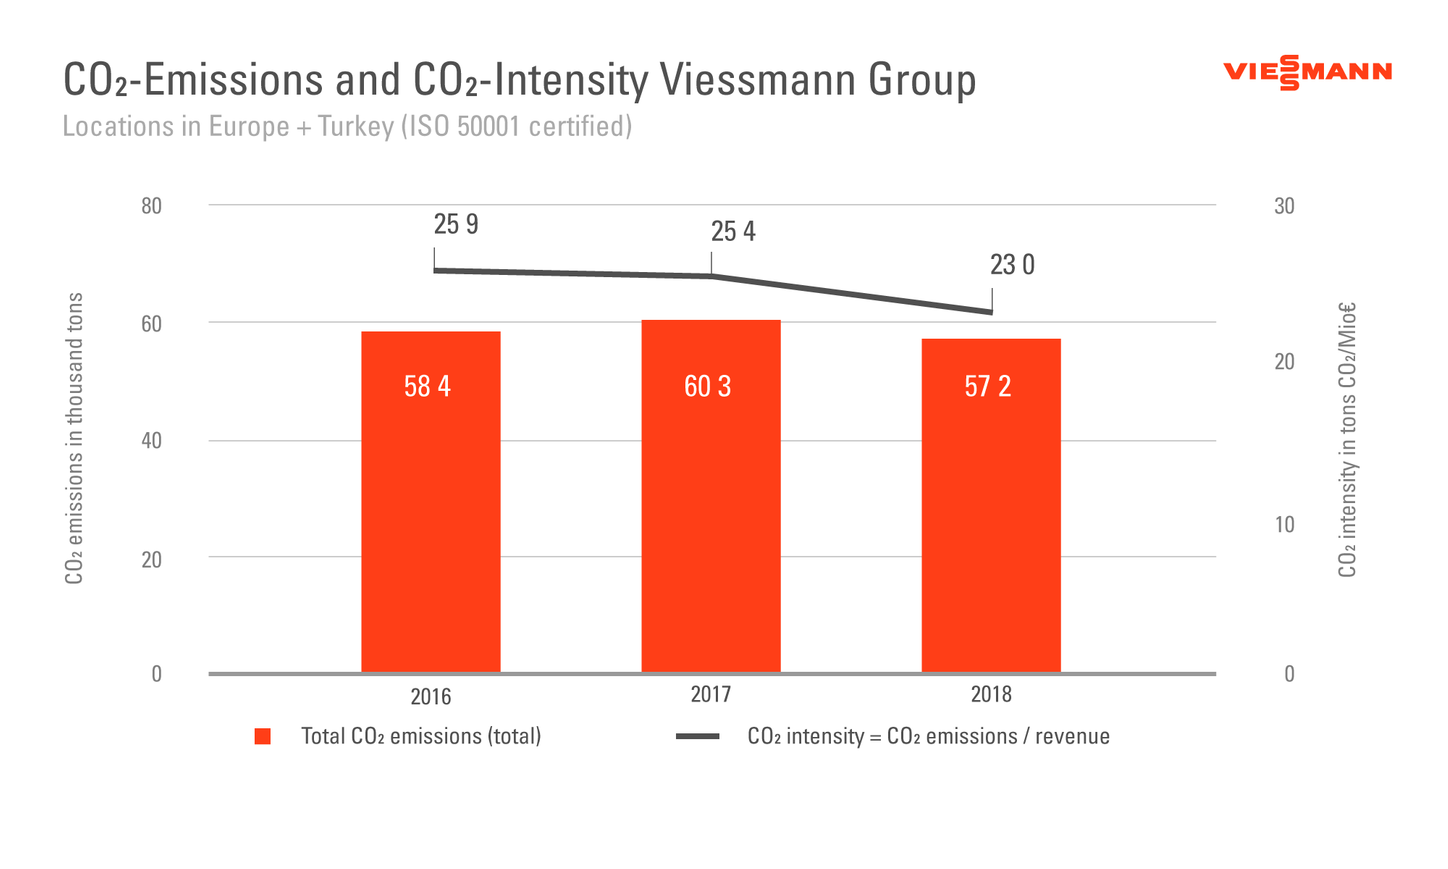 The graphic shows the CO2 emissions and CO2 intensity of the Viessmann Group.